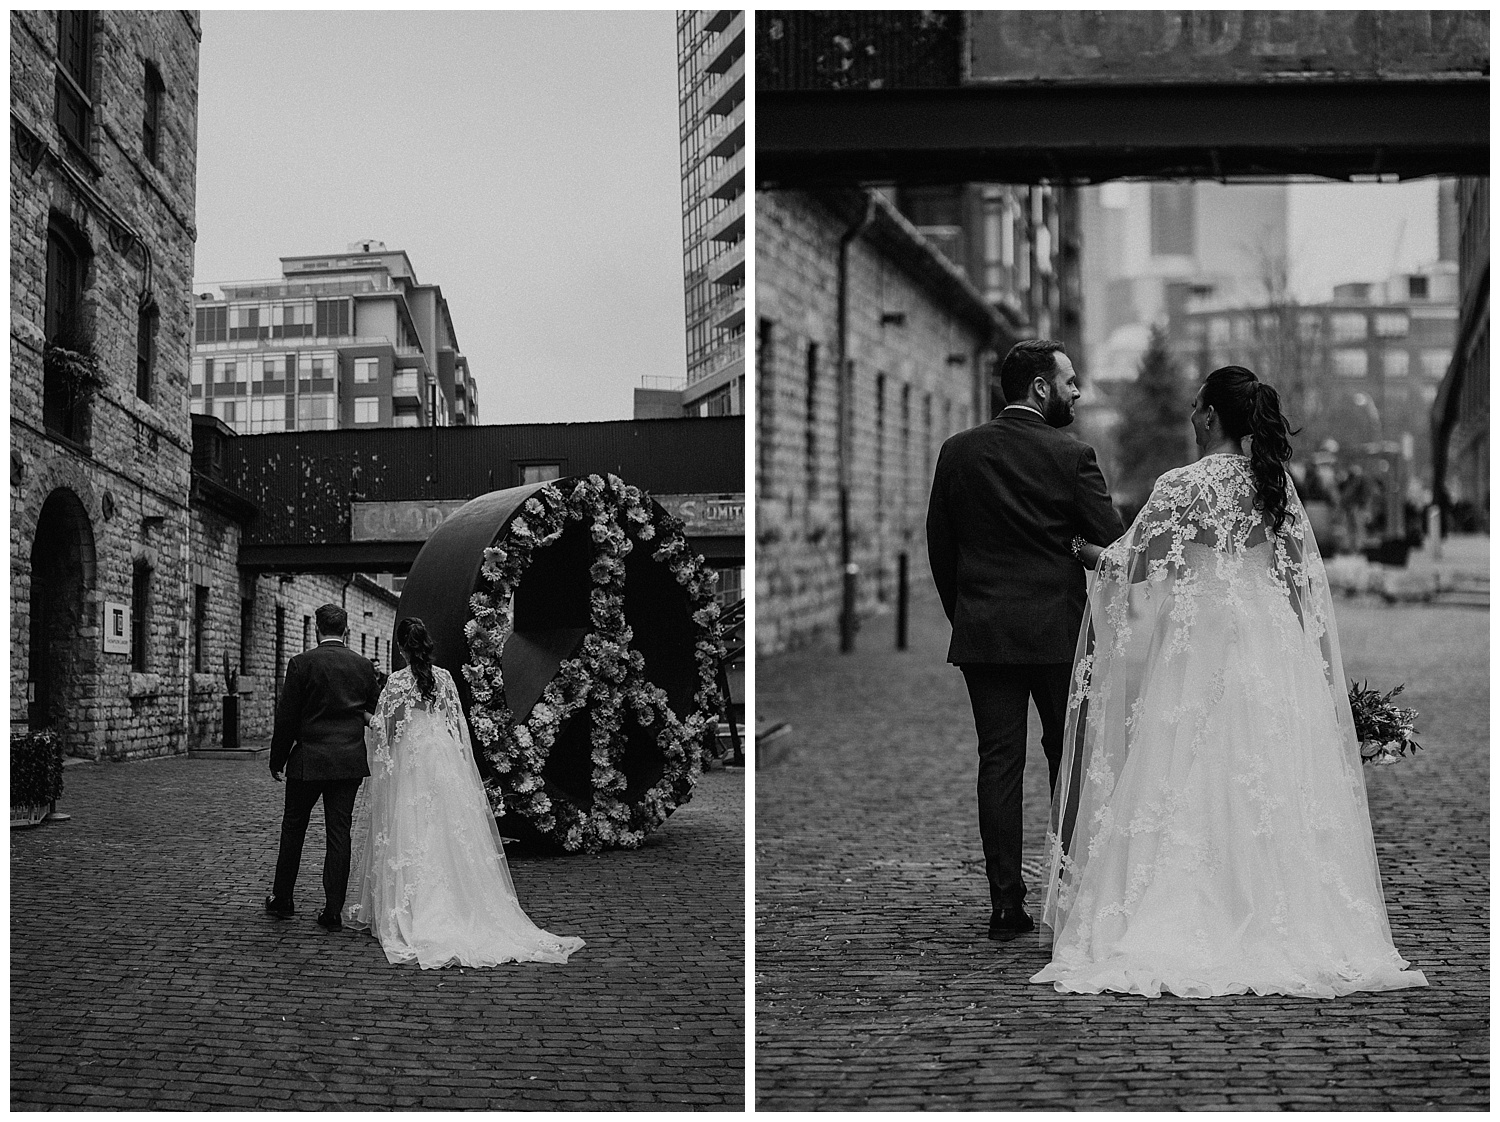 Katie Marie Photography | Archeo Wedding Arta Gallery Wedding | Distillery District Wedding | Toronto Wedding Photographer | Hamilton Toronto Ontario Wedding Photographer |_0026.jpg